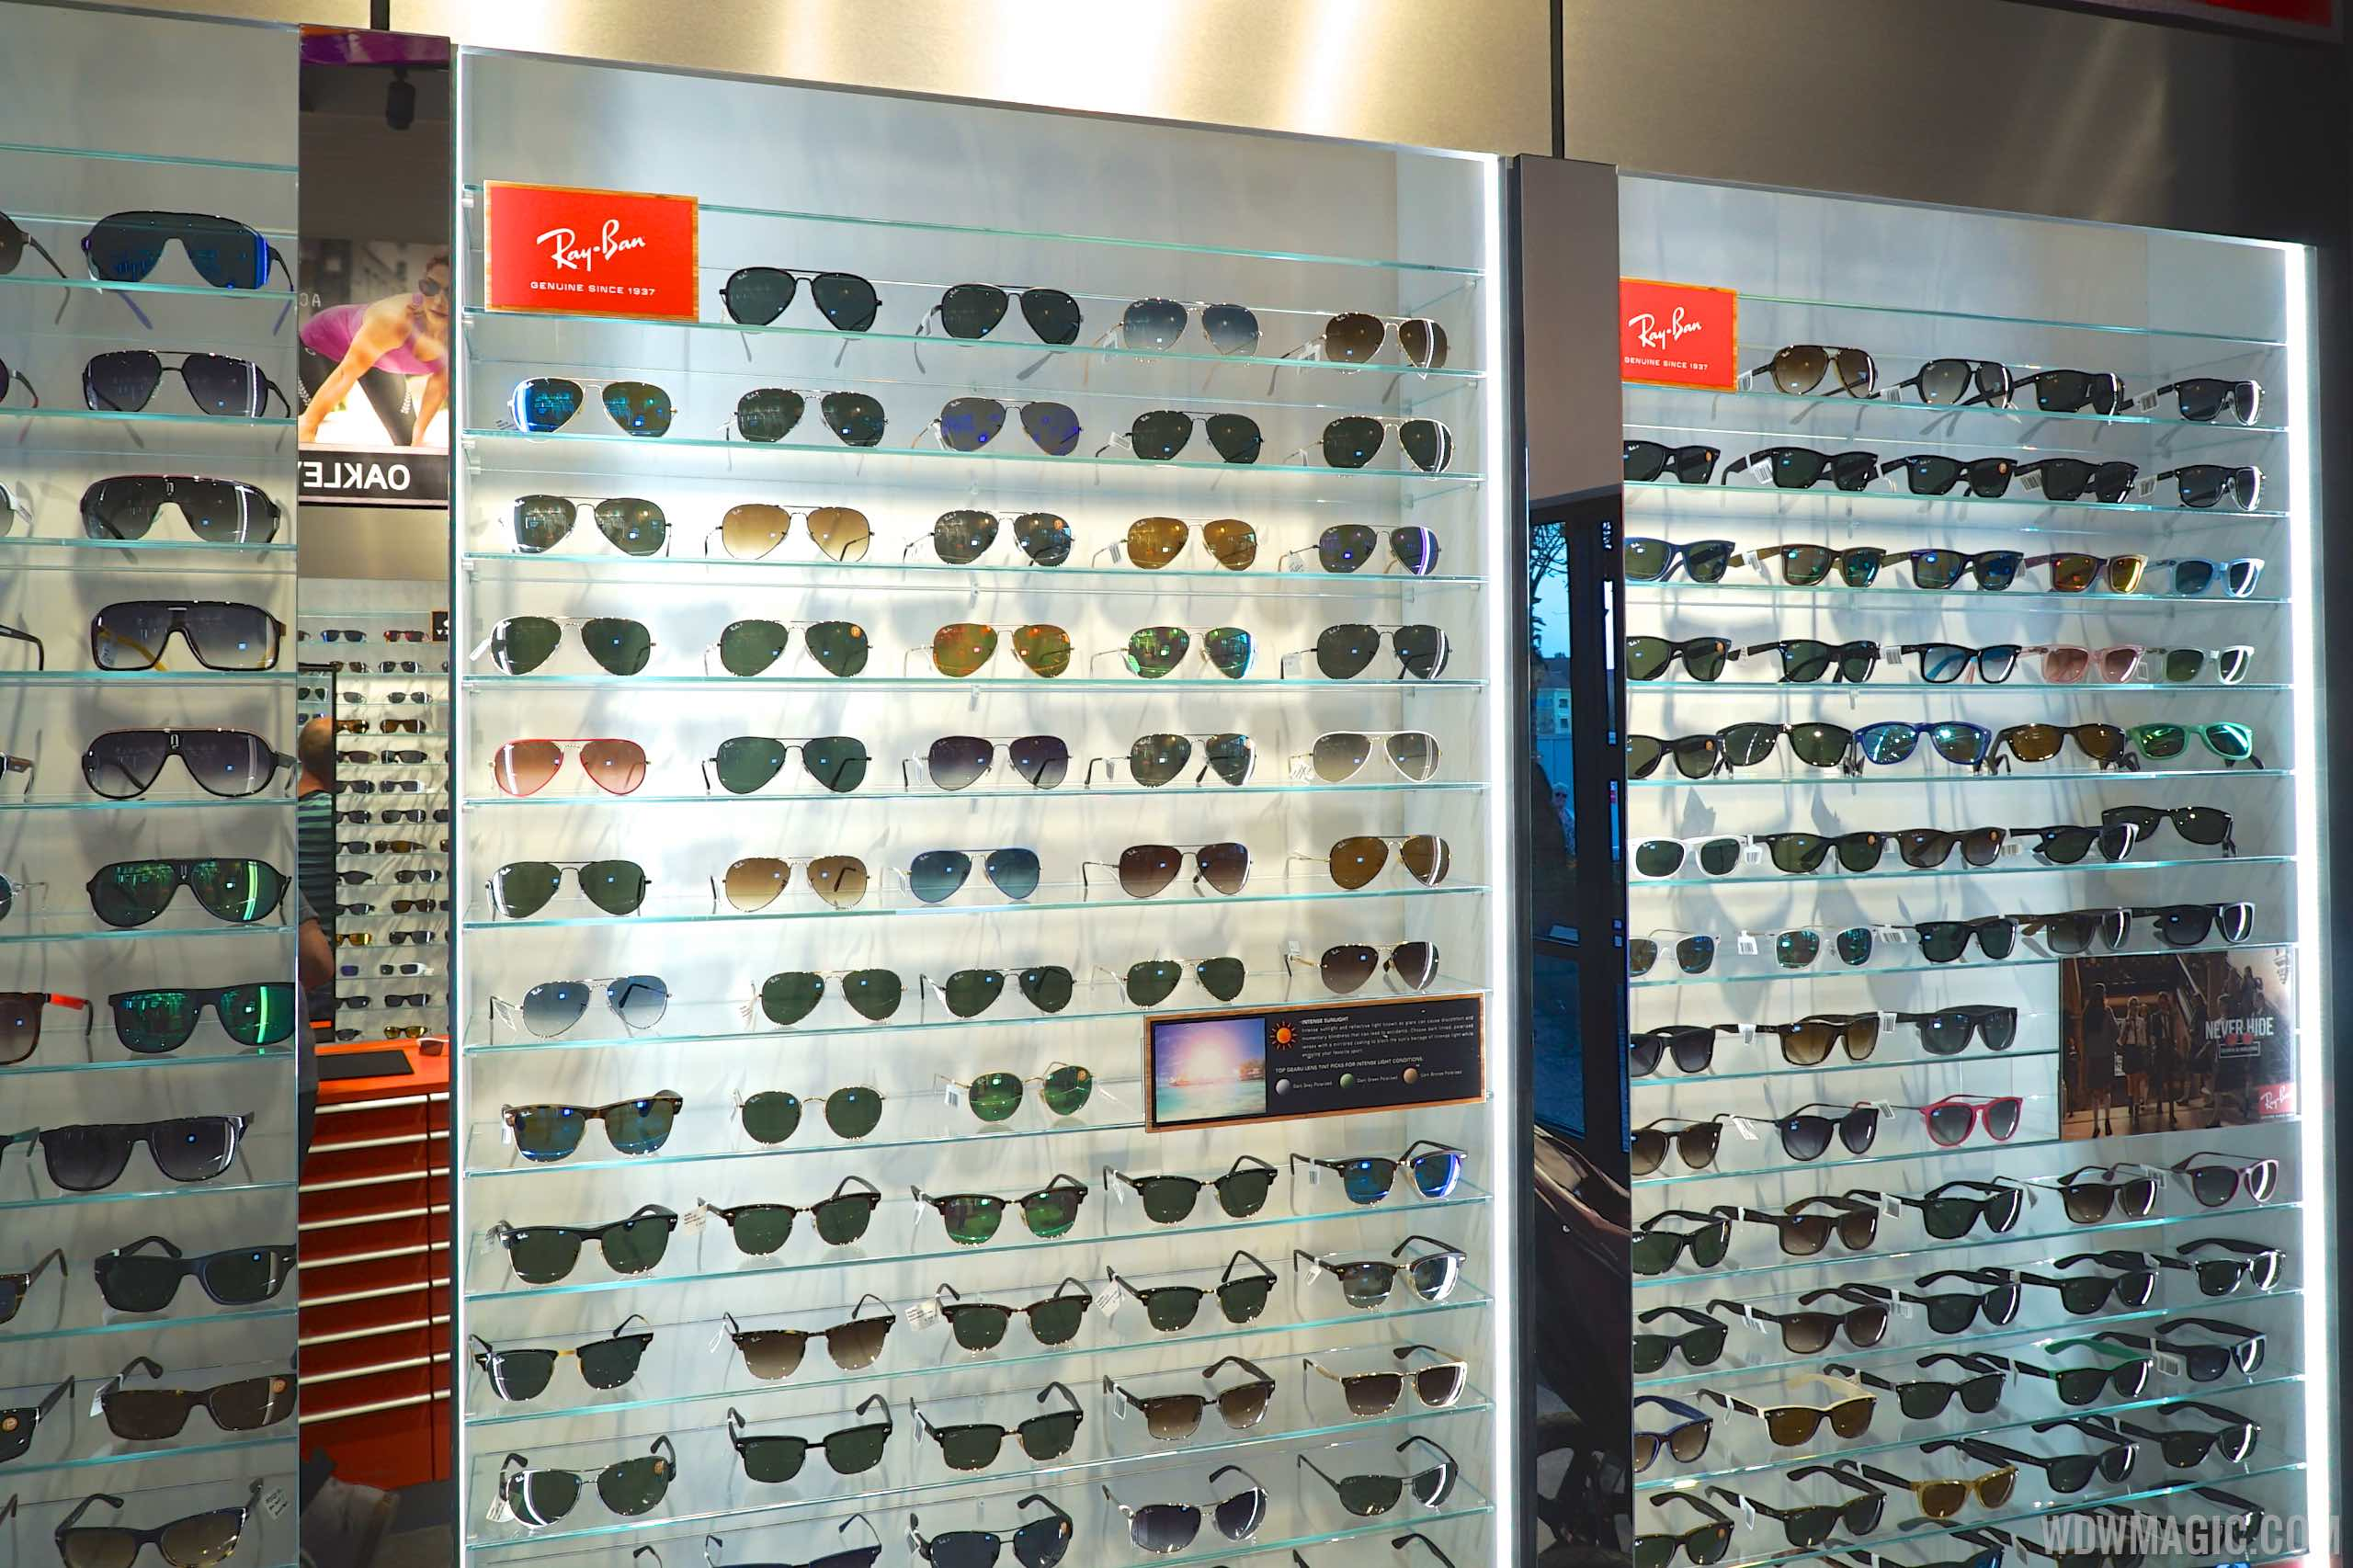 214445a0f24 APEX by Sunglass Hut overview - Photo 4 of 5